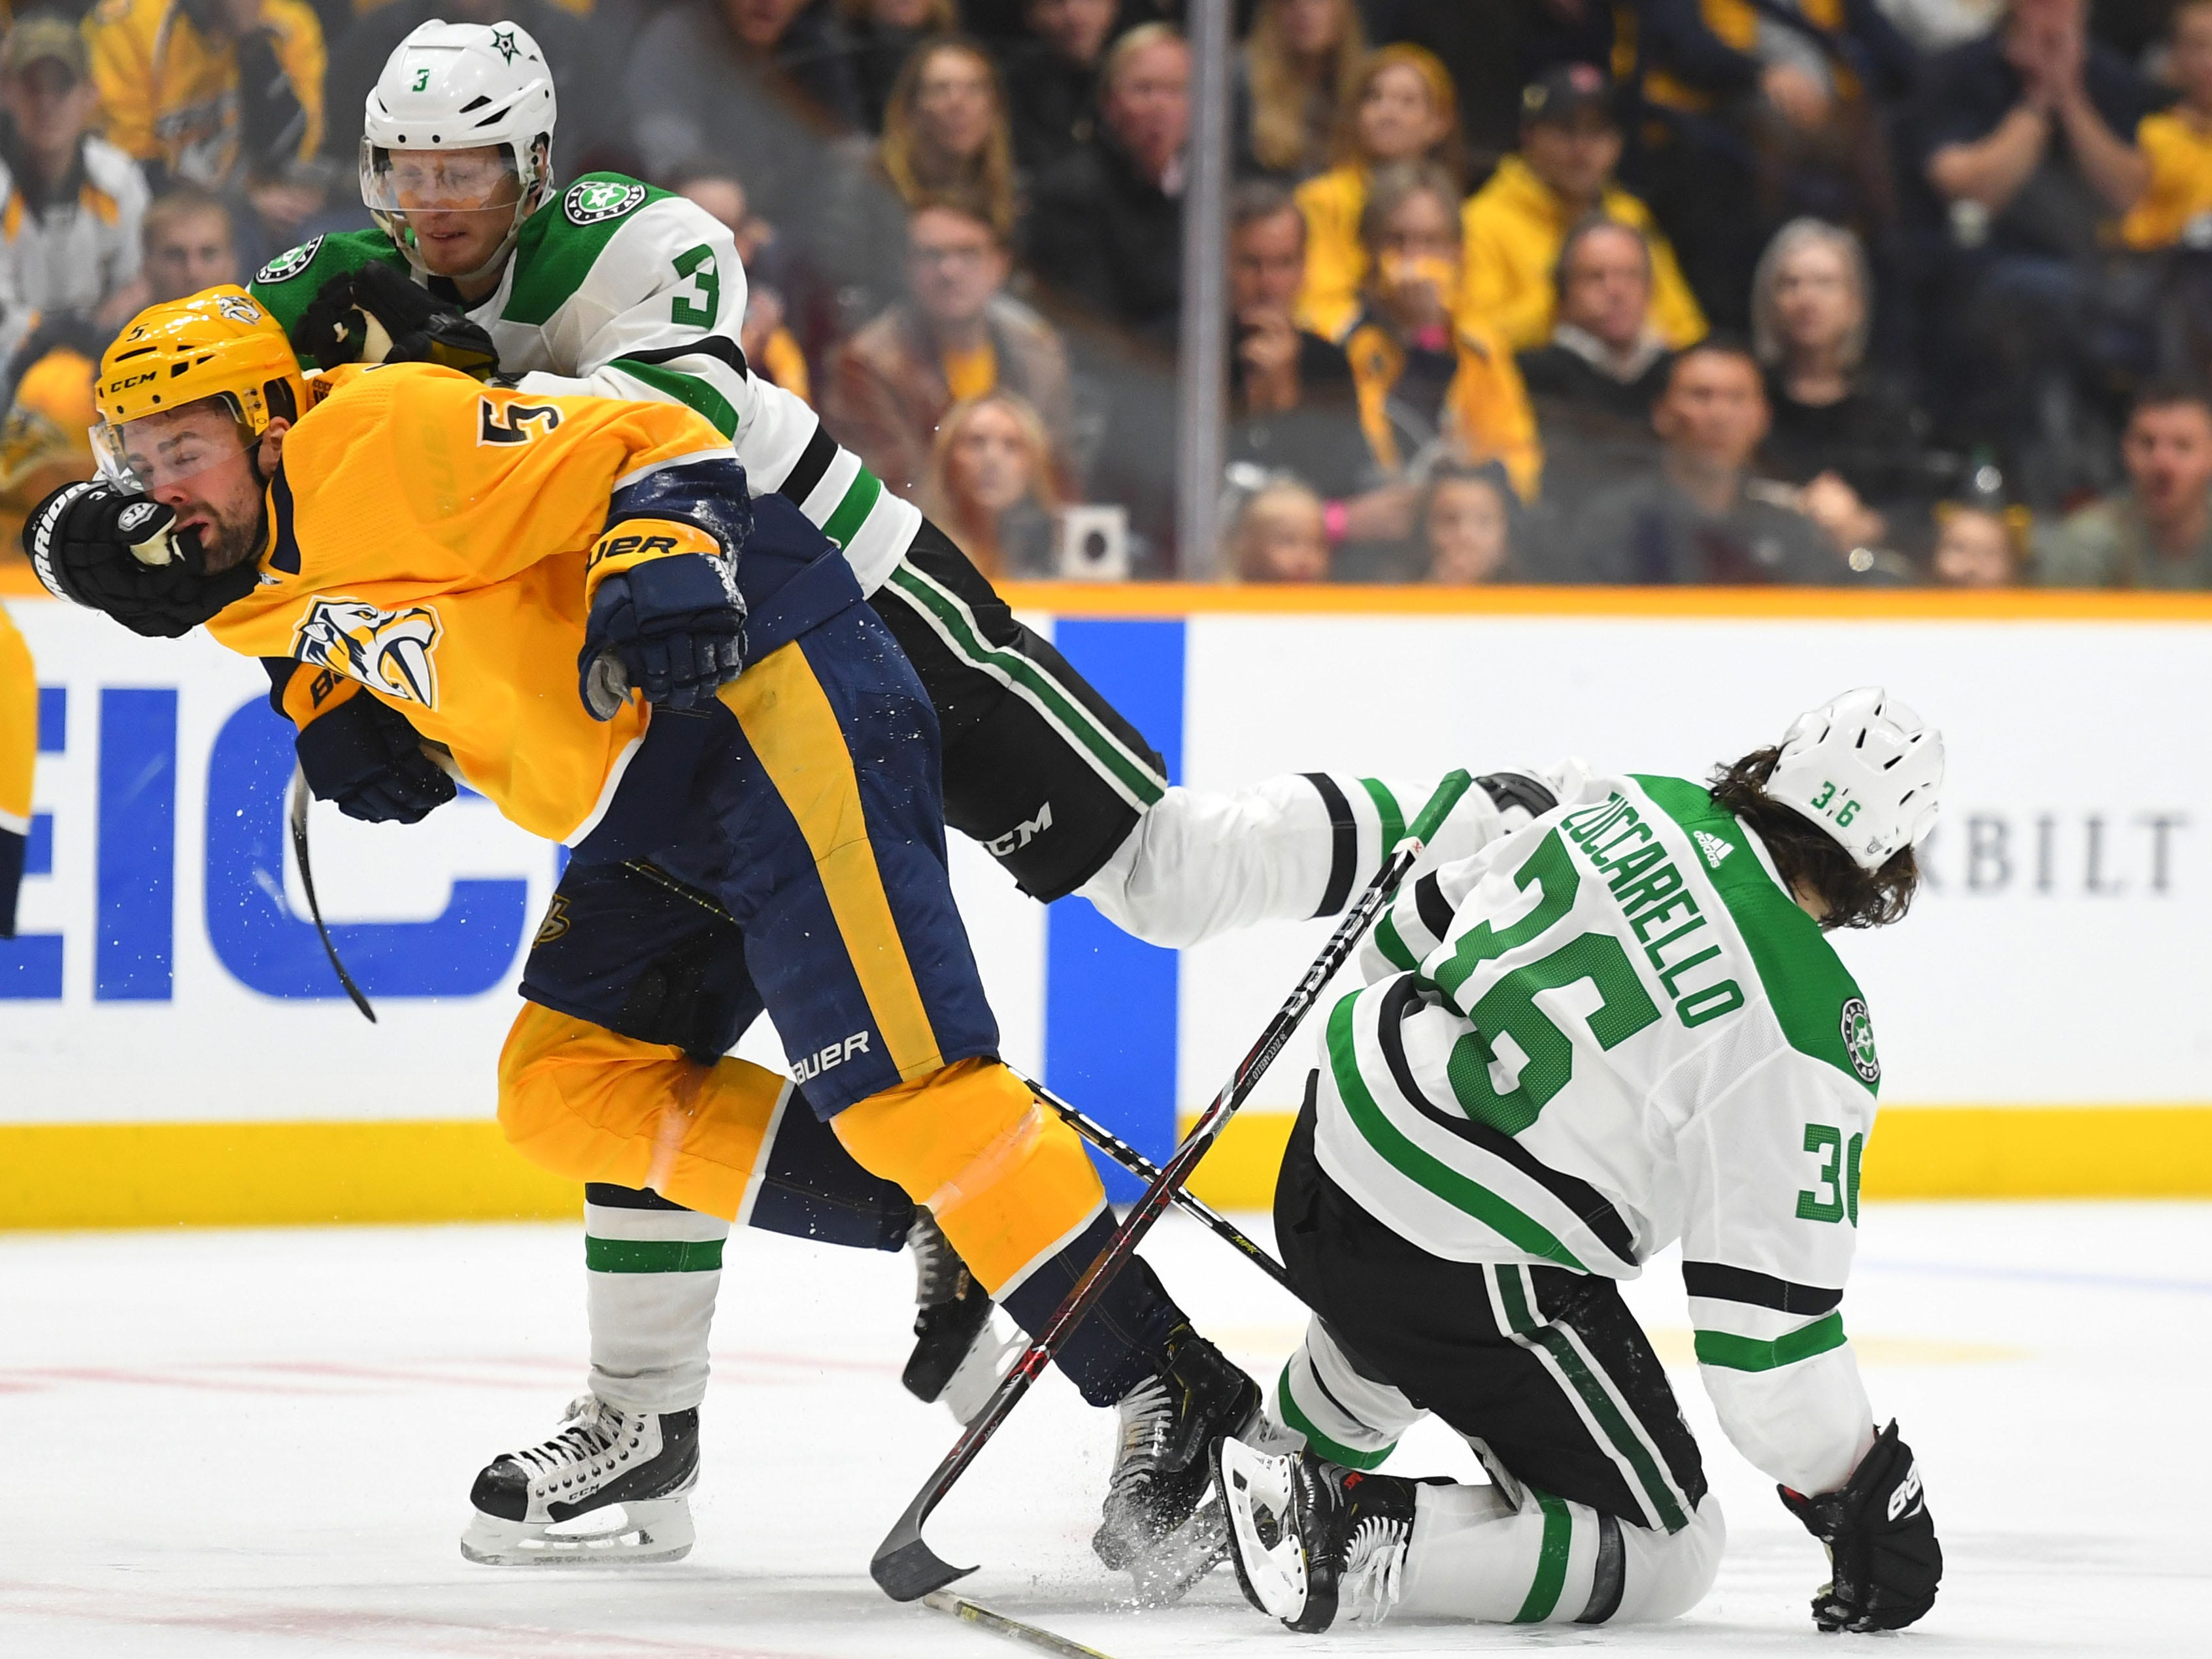 First round: Stars defenseman John Klingberg (3) jumps on Predators defenseman Dan Hamhuis (5) after a hit on Stars center Mats Zuccarello (36) during the second period of Game 5 in Nashville. The Stars won 5-3 to take a 3-2 series lead.